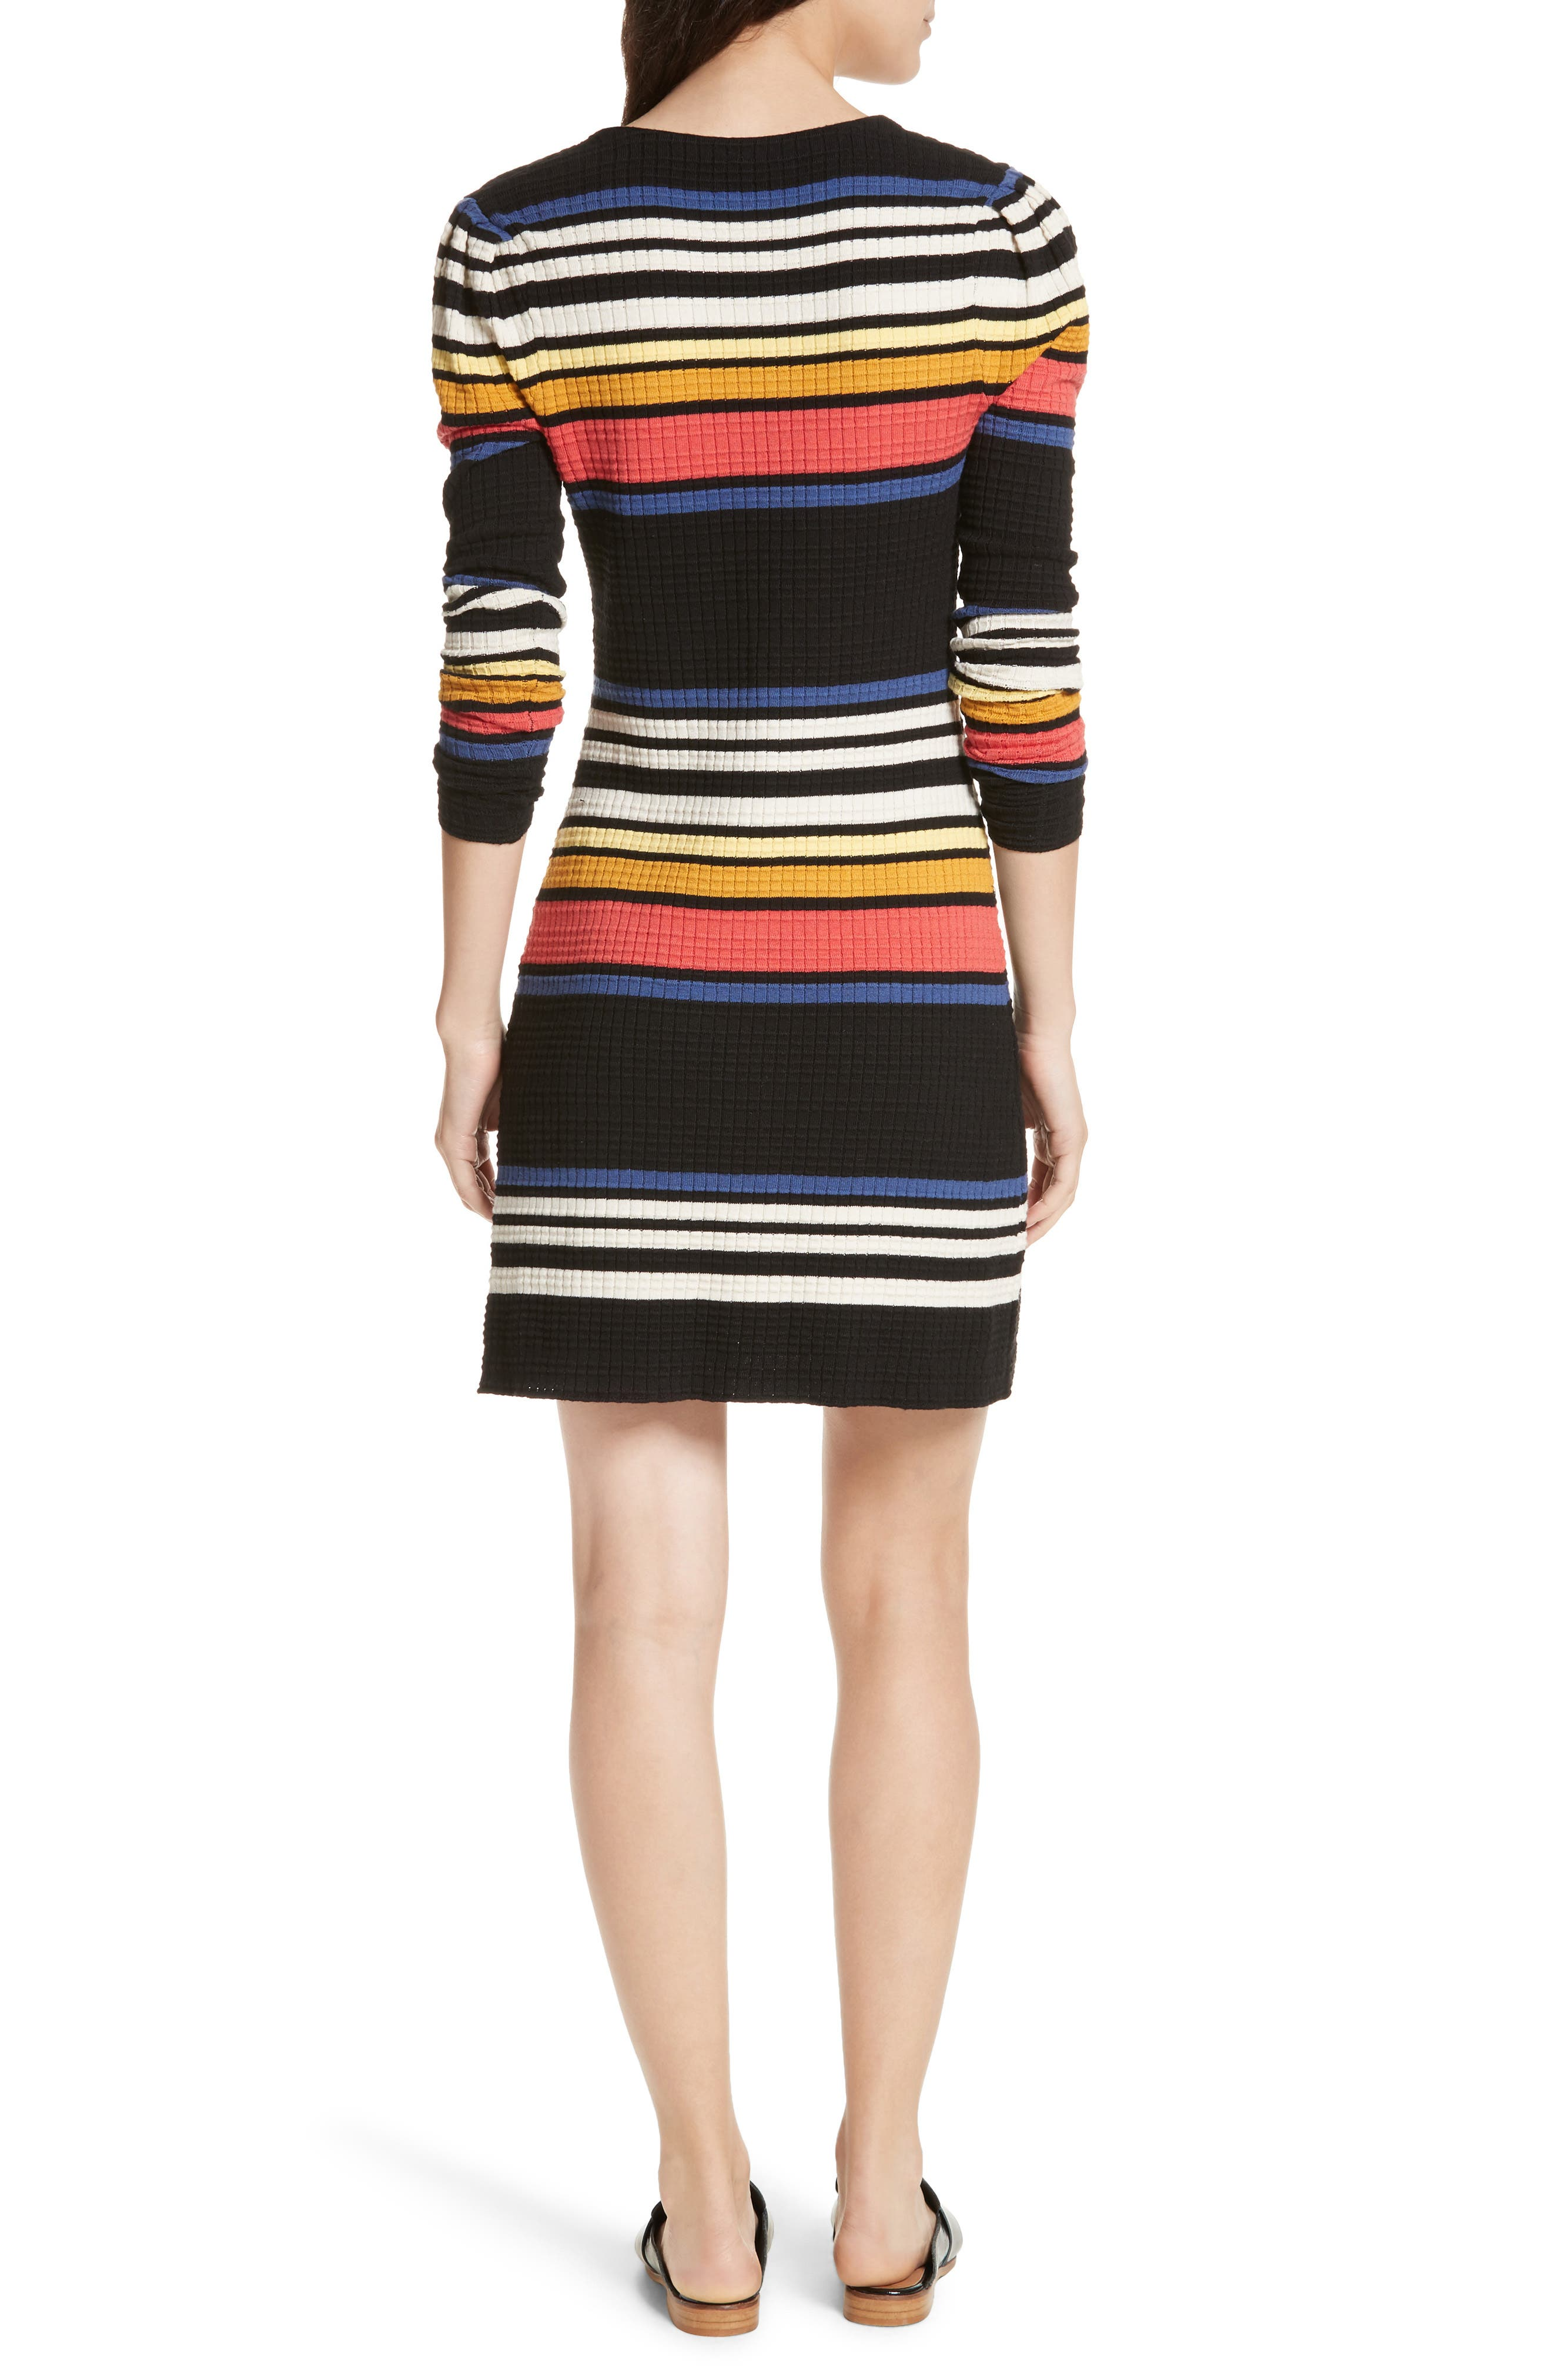 Gidget Sweater Dress,                             Alternate thumbnail 2, color,                             001